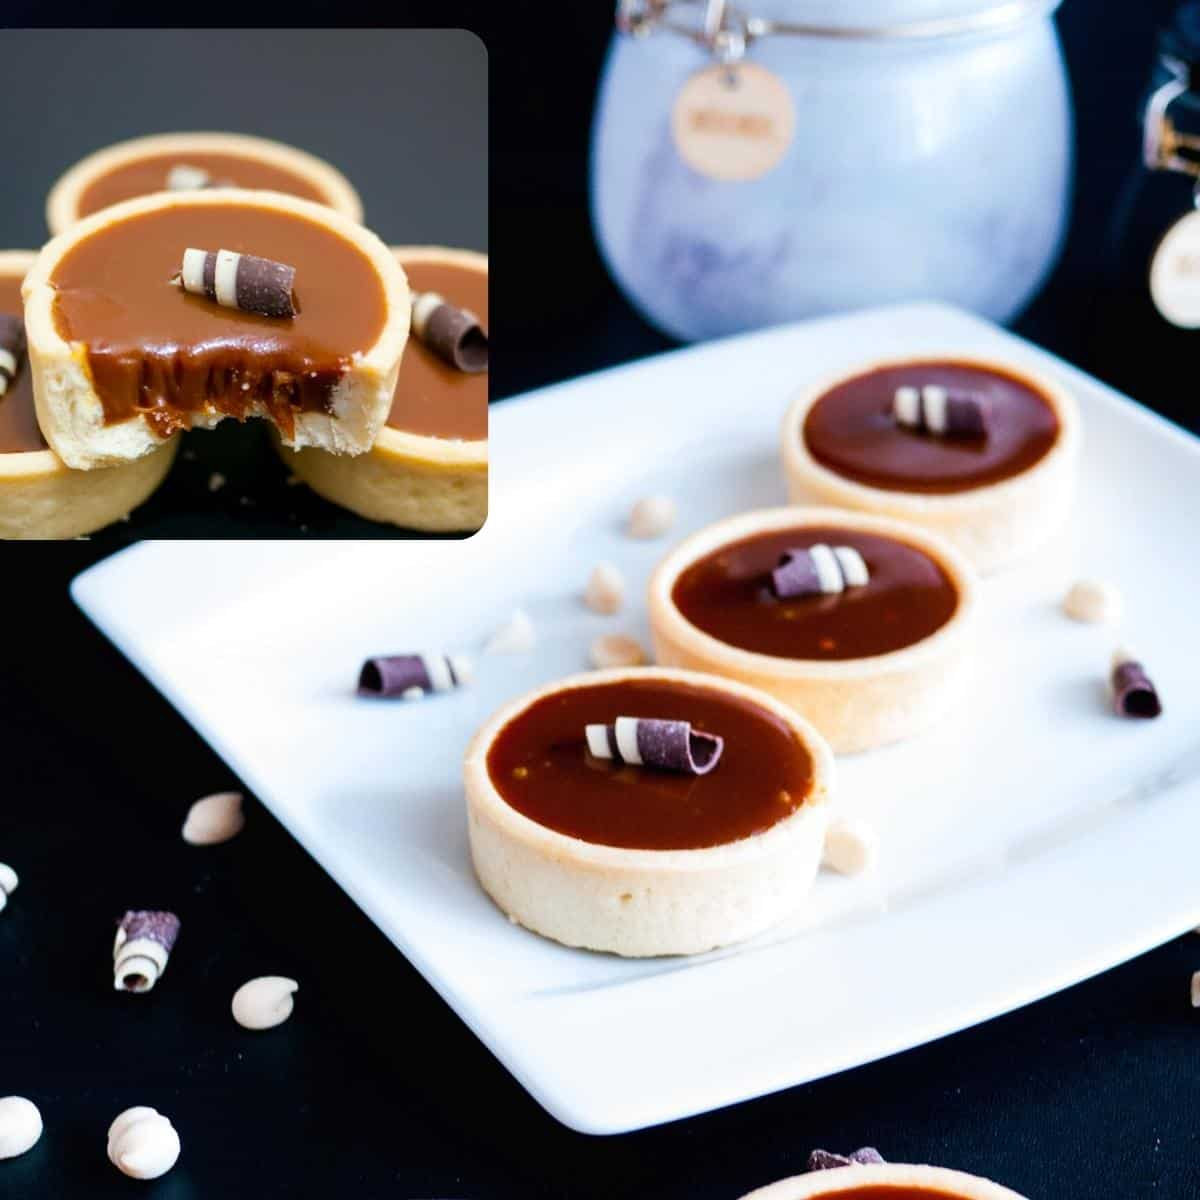 Mini tartlets on a white plate.